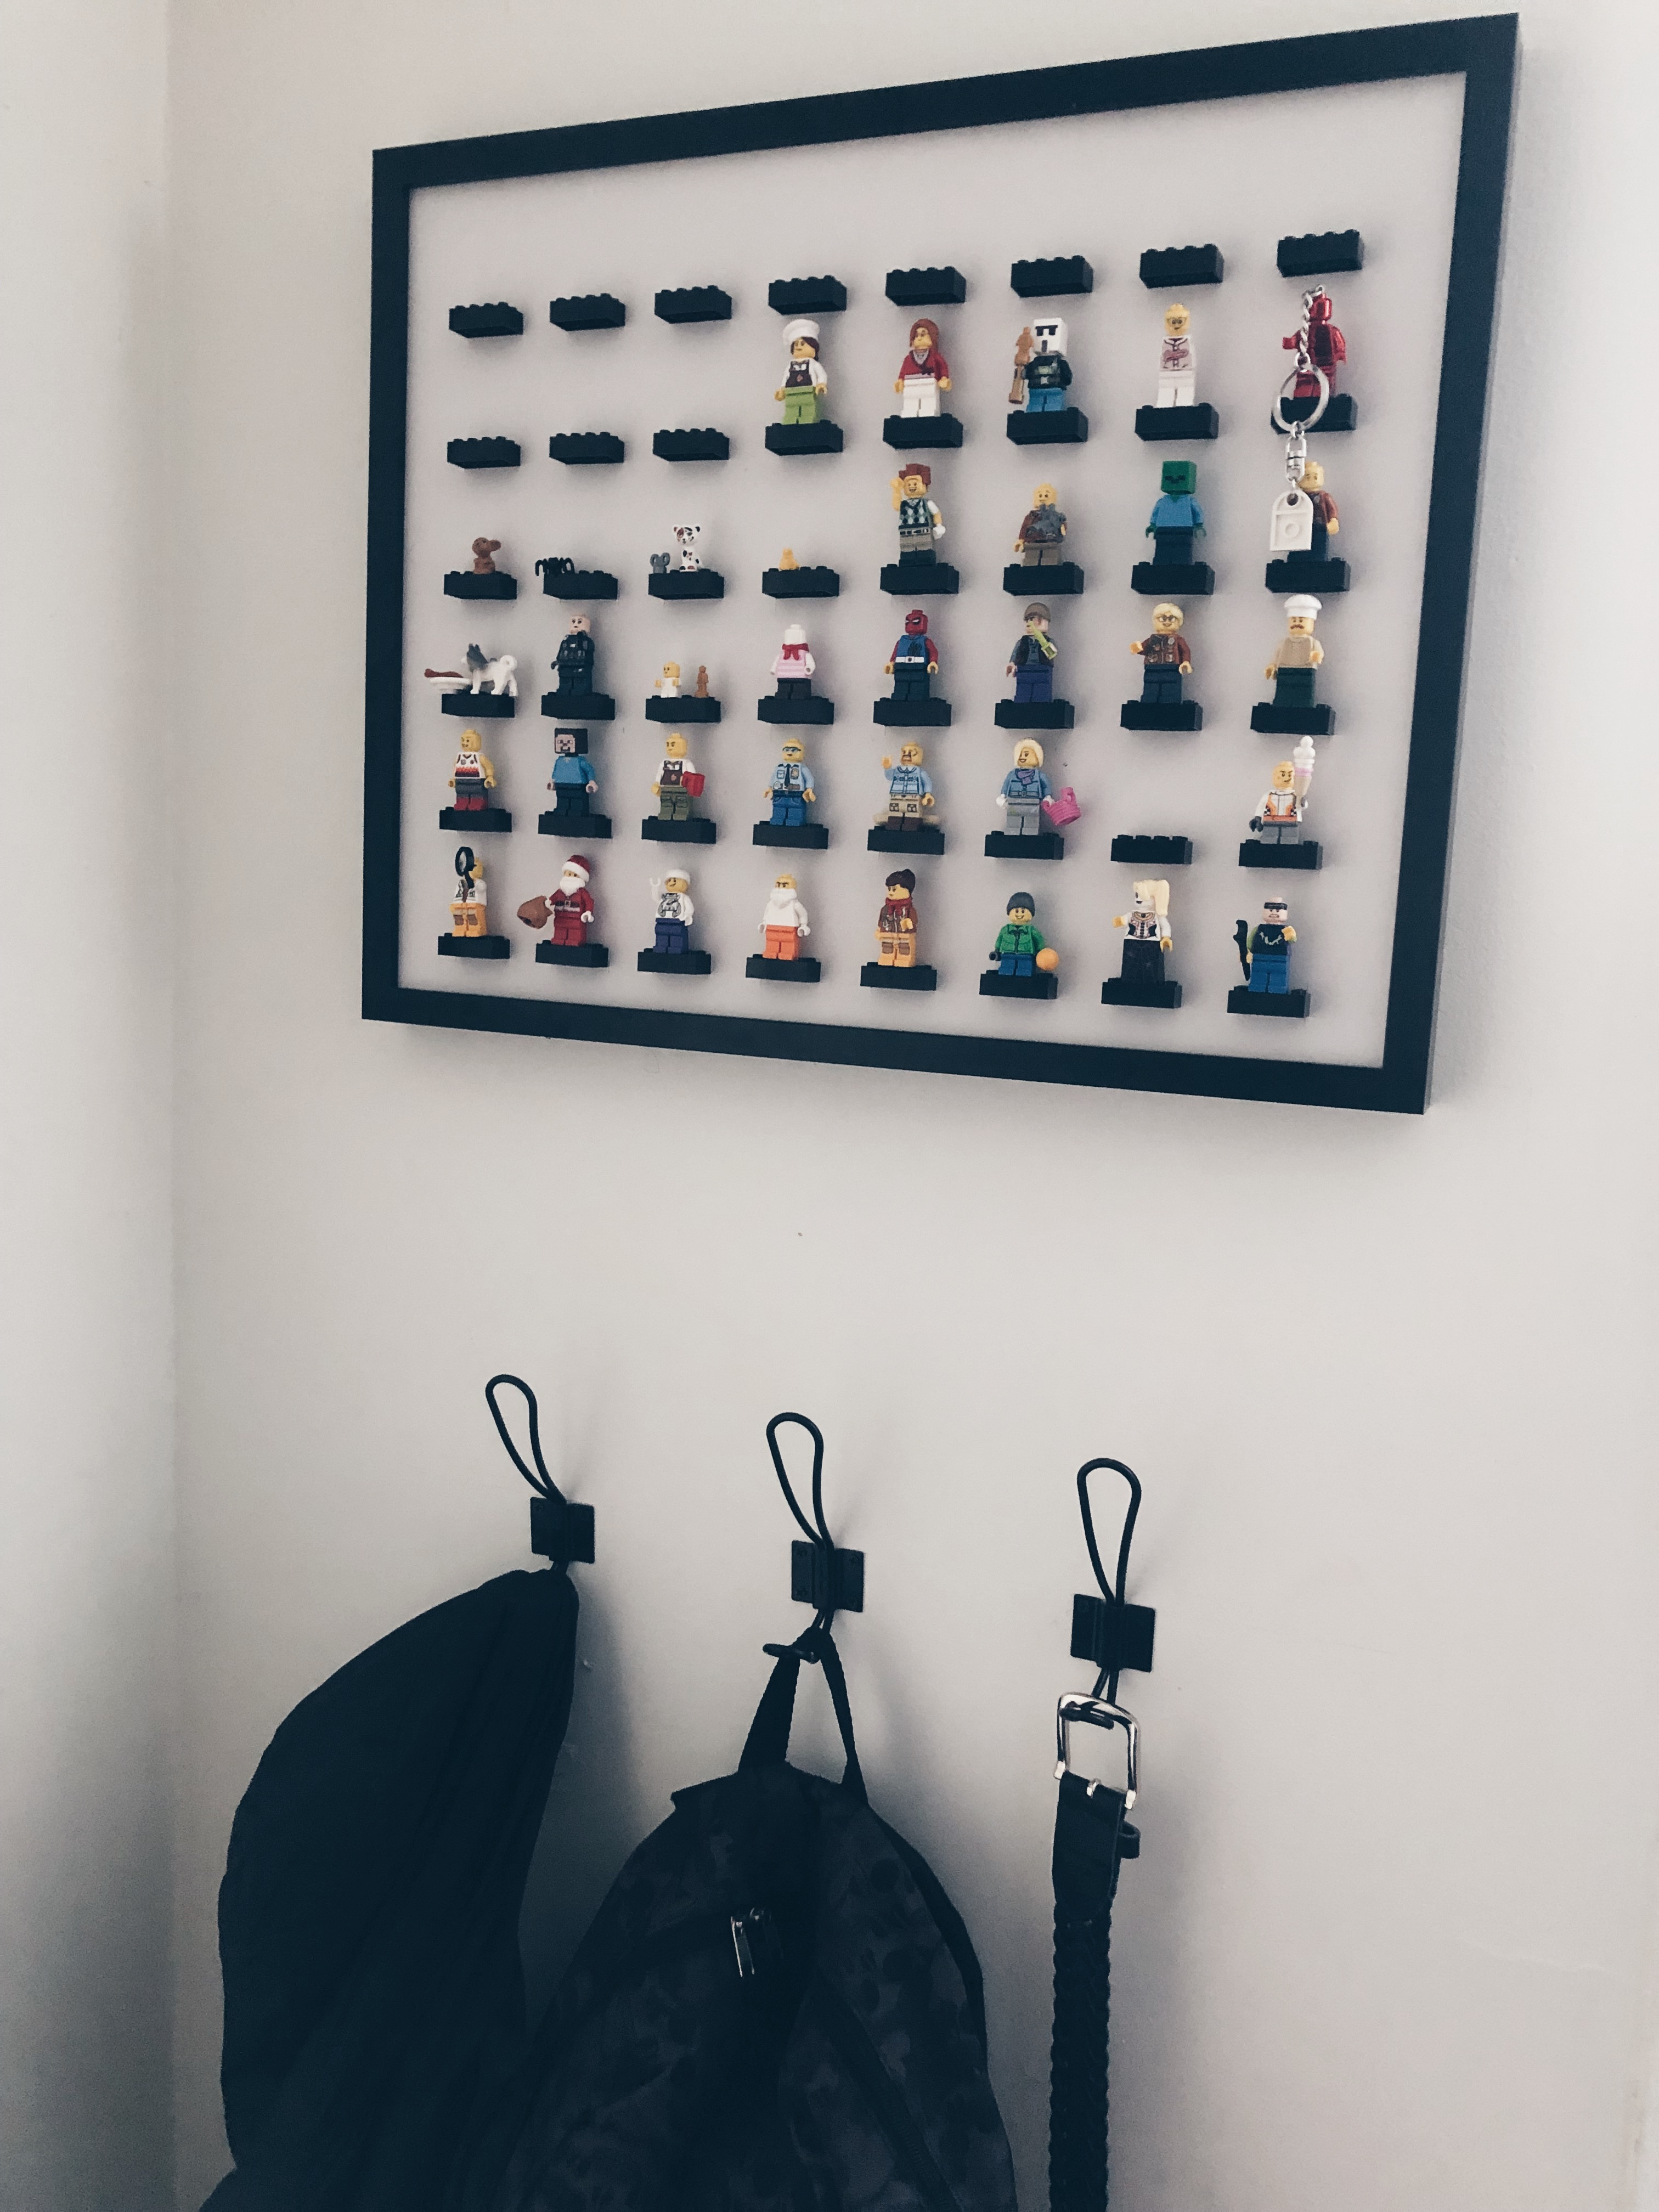 Lego mini figure display frame